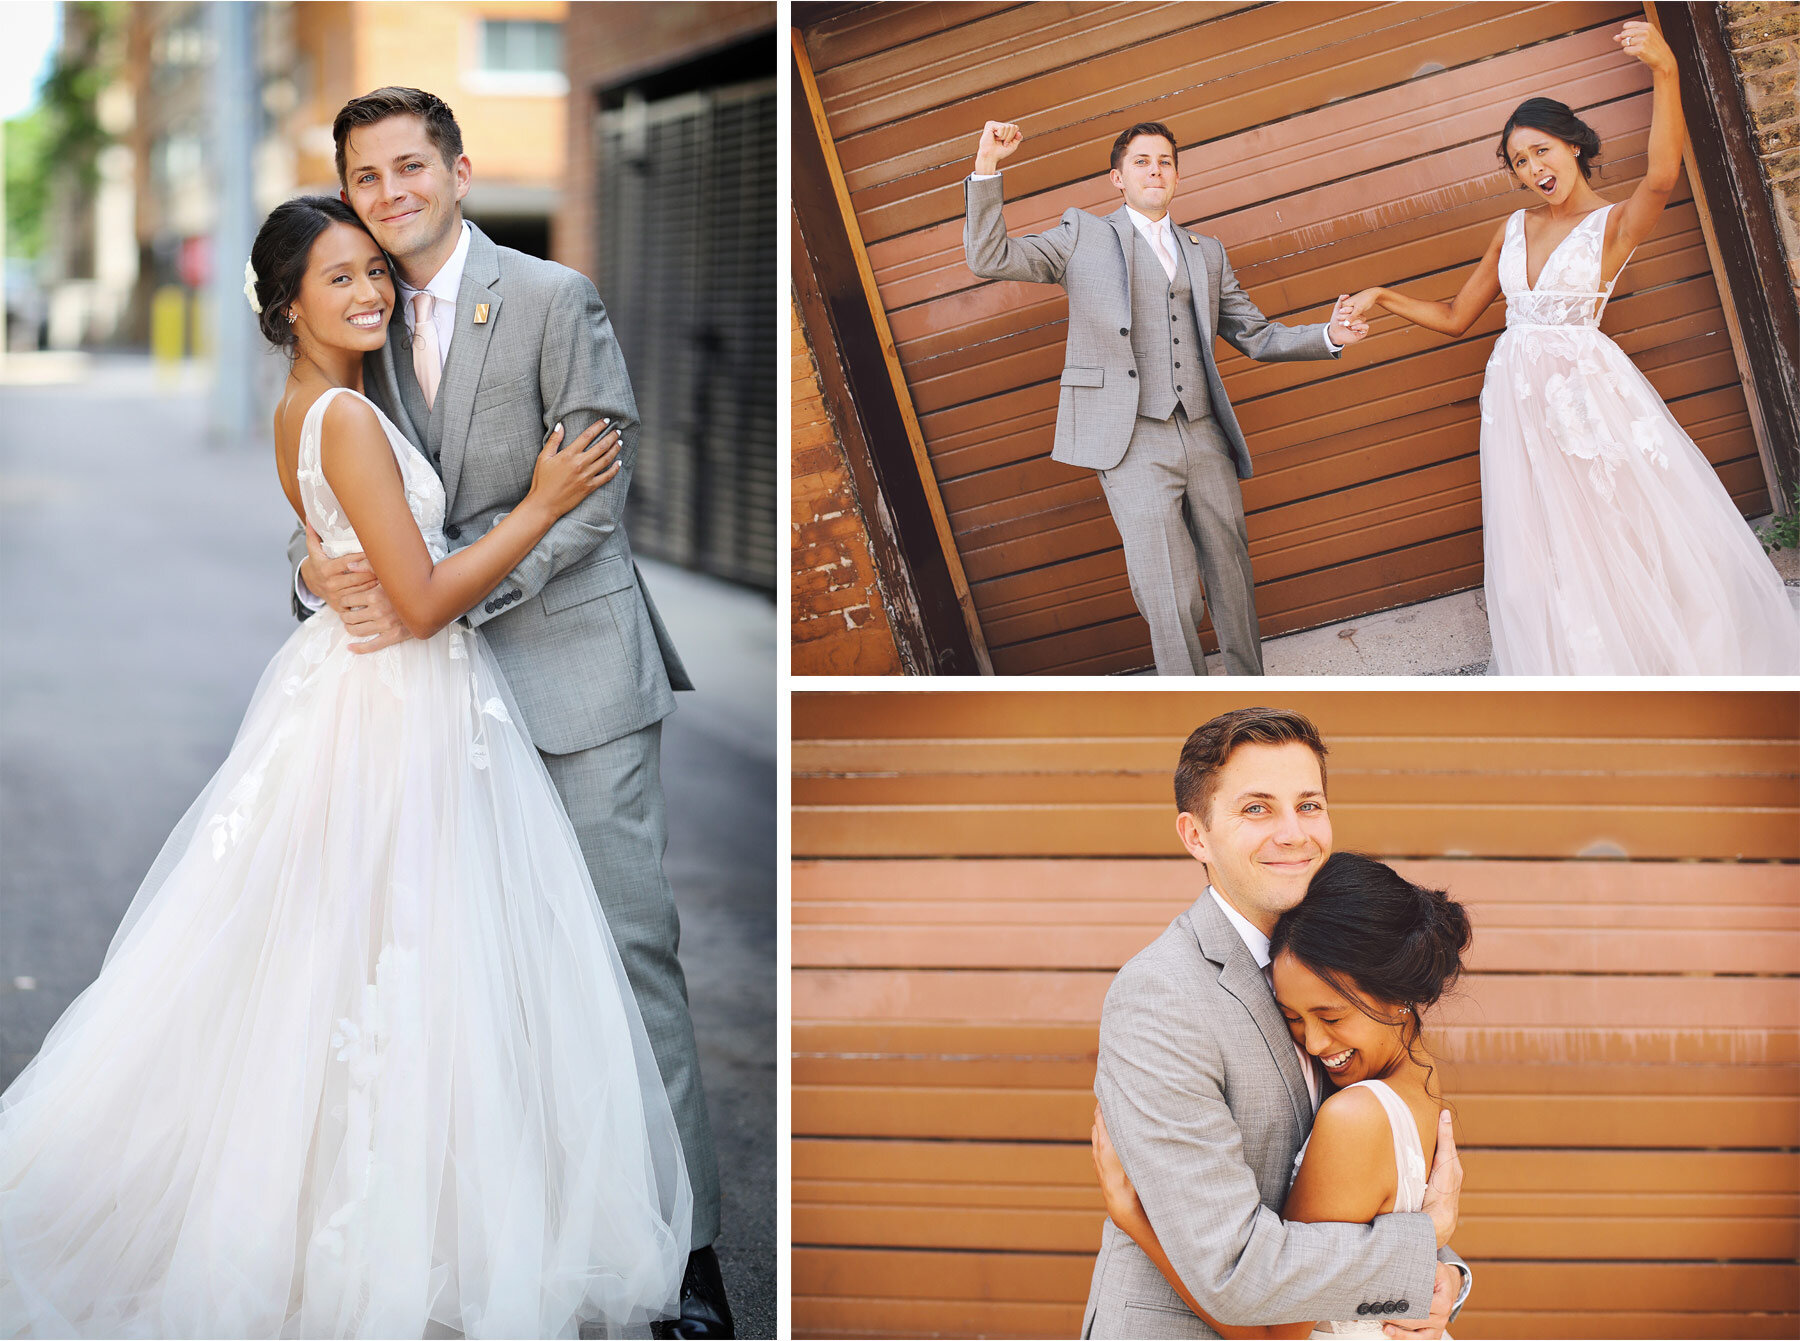 04-Wedding-by-Andrew-Vick-Photography-Chicago-Illinois-Bride-Groom-First-Look-Downtown-Brownstone-Ashley-and-Nicholas.jpg